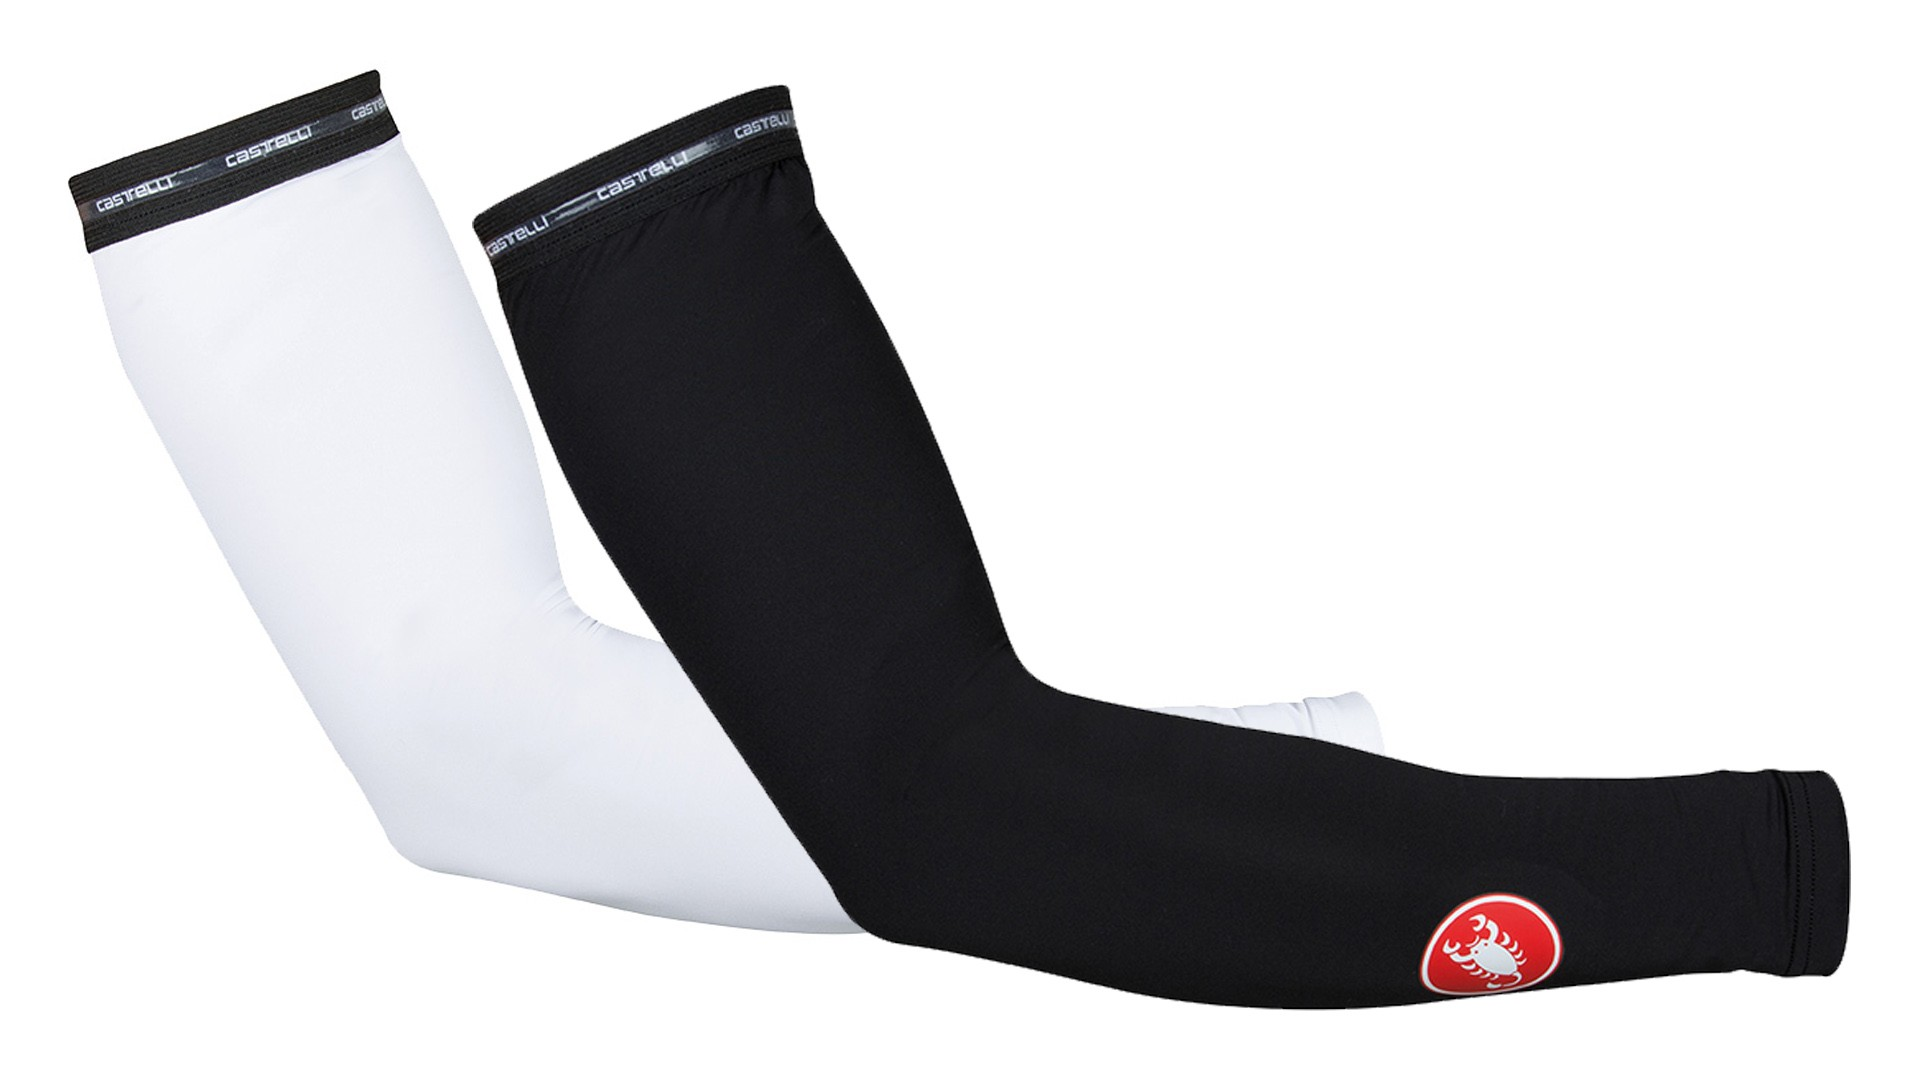 Slip on some lightweight Castelli arm sleeves to protect your arms